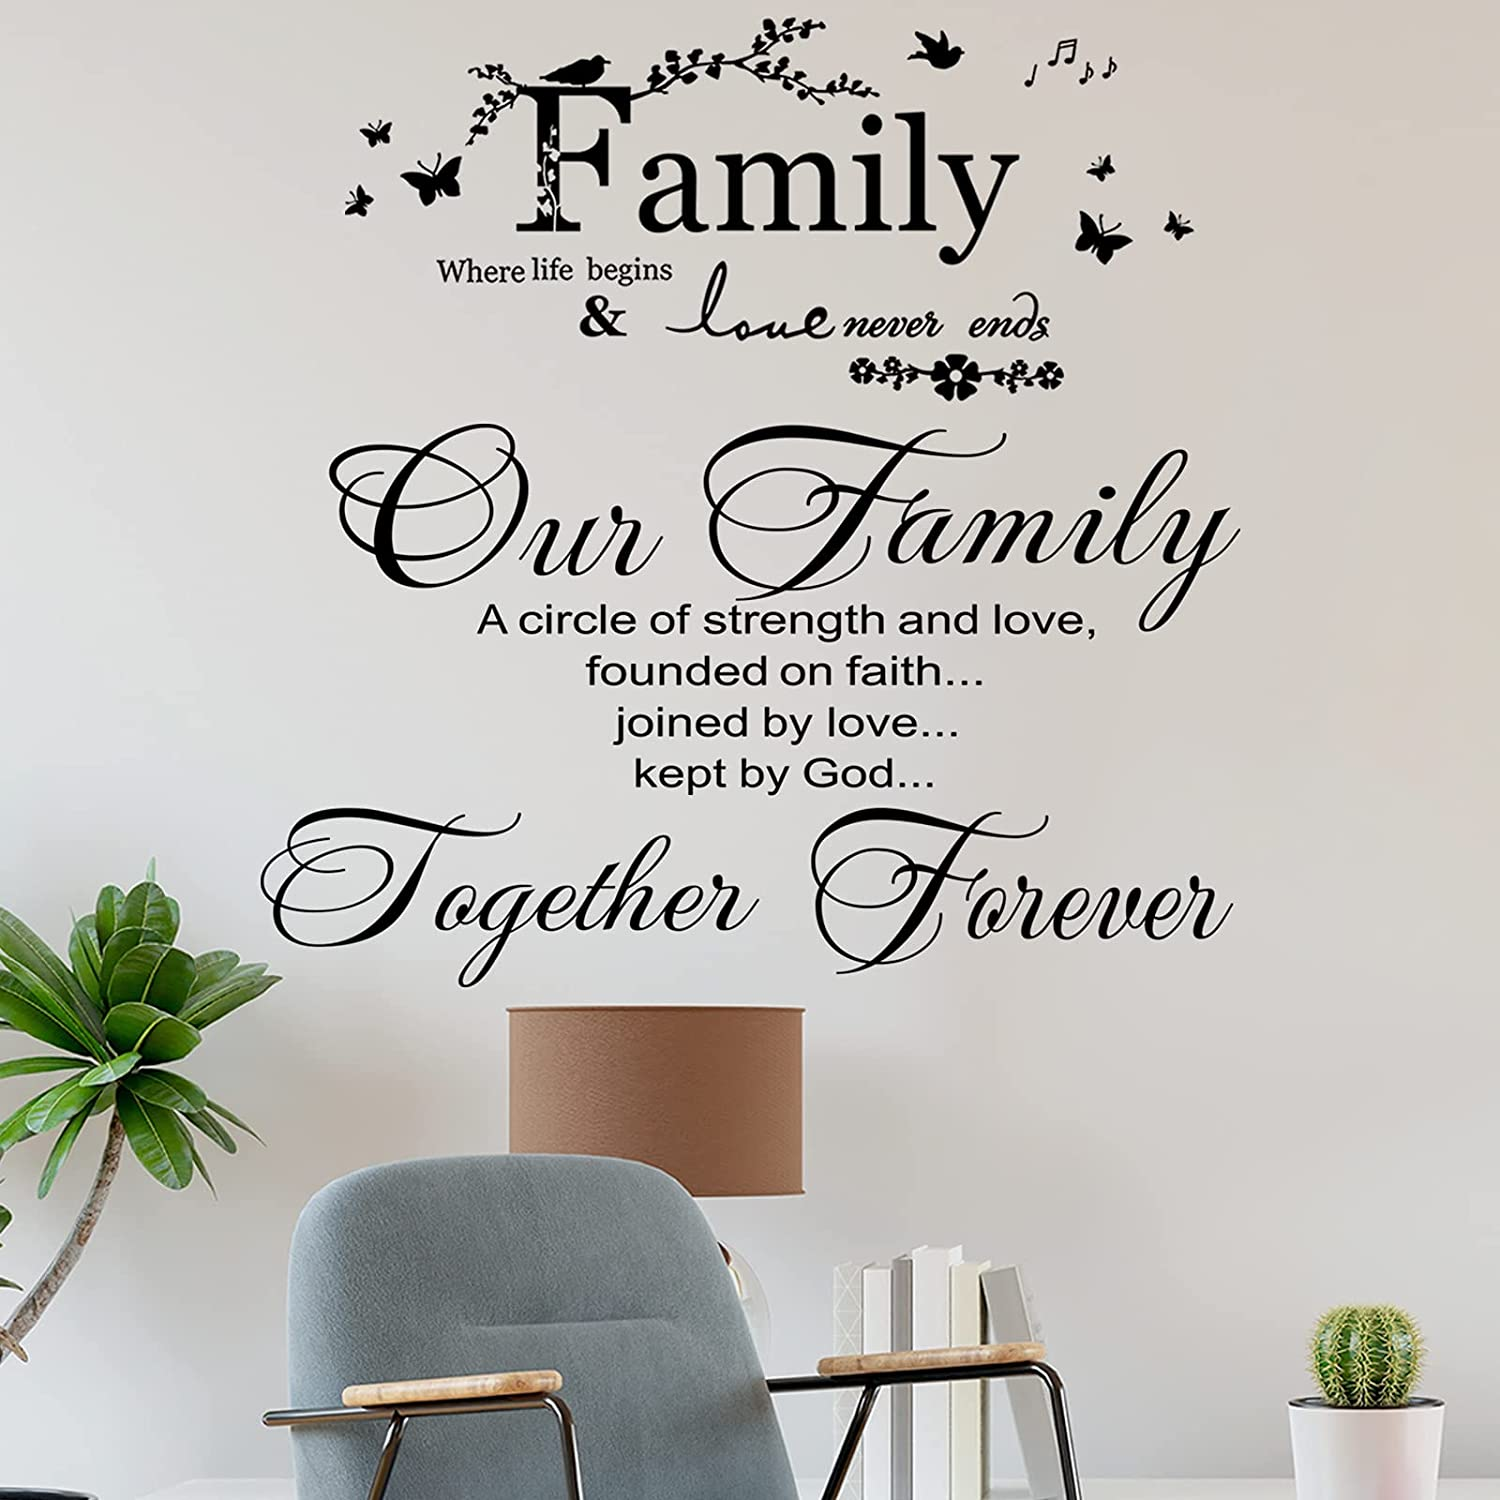 2 Pieces Vinyl Home Decor Wall Sticker Family Letter Quote ?Our Family is A Circle of Strength and Love Founded On Faith Joined in Love Kept by God Home Decor for Living Room Bedroom